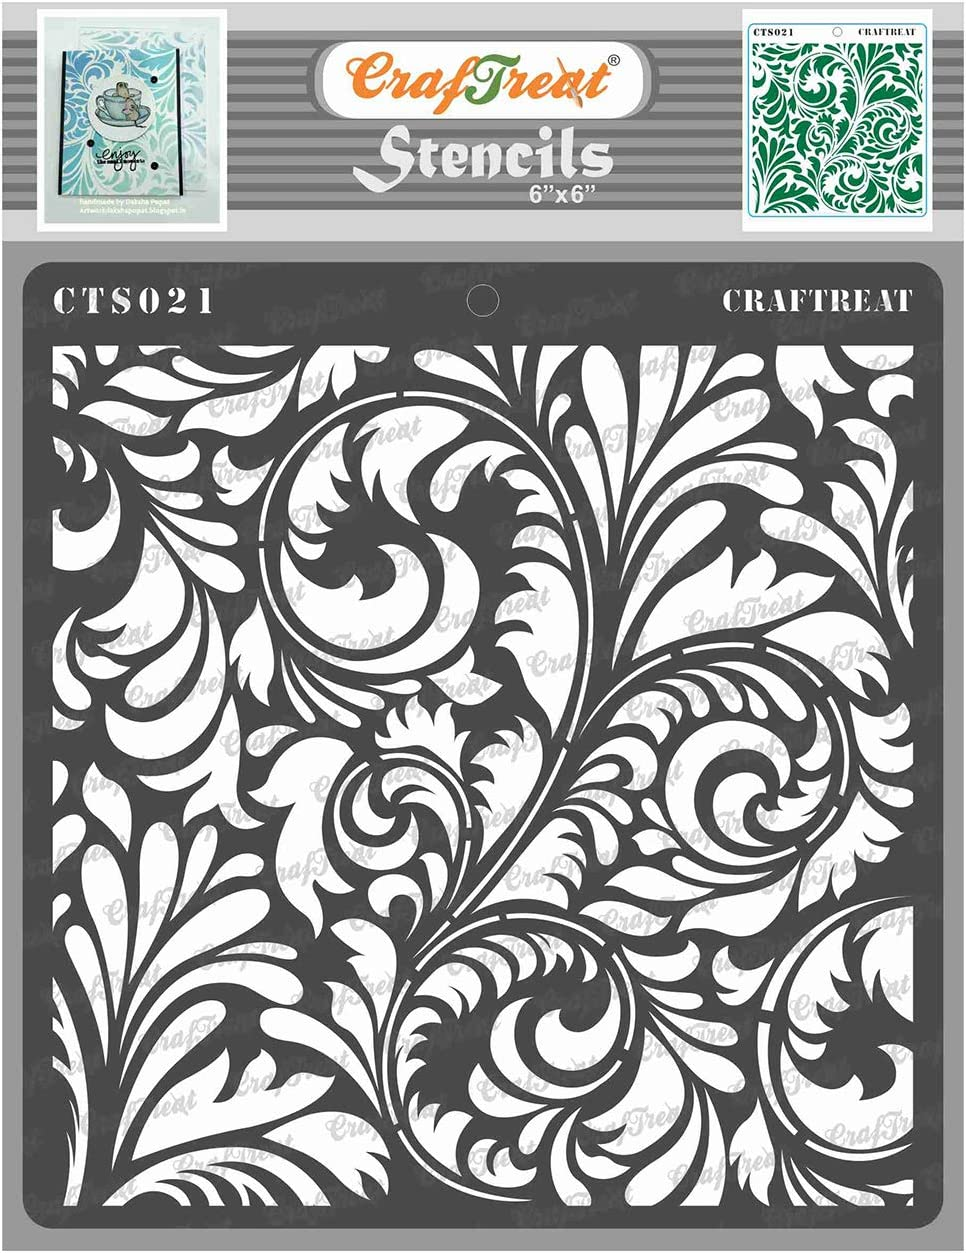 CrafTreat Floral Stencils for Painting on Wood, Canvas, Paper, Fabric, Floor, Wall and Tile - Flourish 2-6x6 Inches - Reusable DIY Art and Craft Stencils for Home Decor - Flourish Wall Stencil